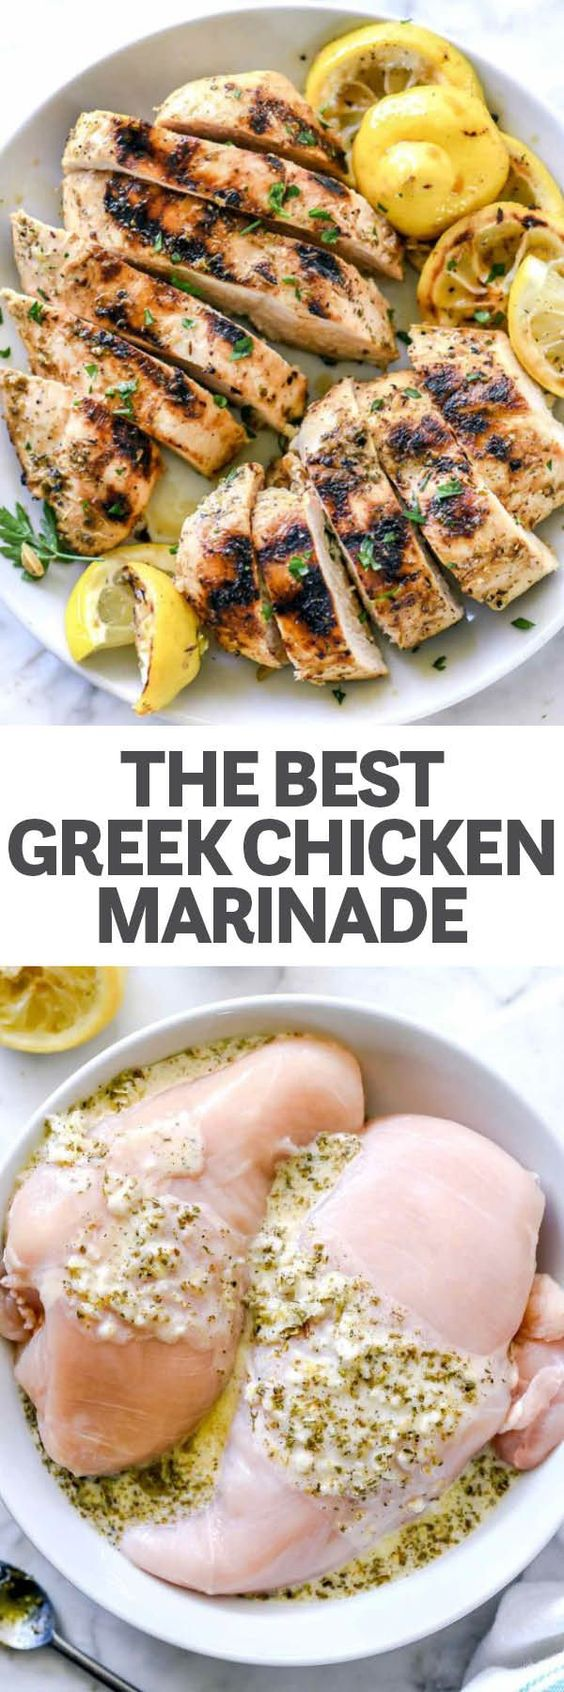 The-Best-Greek-Chicken-Marinade